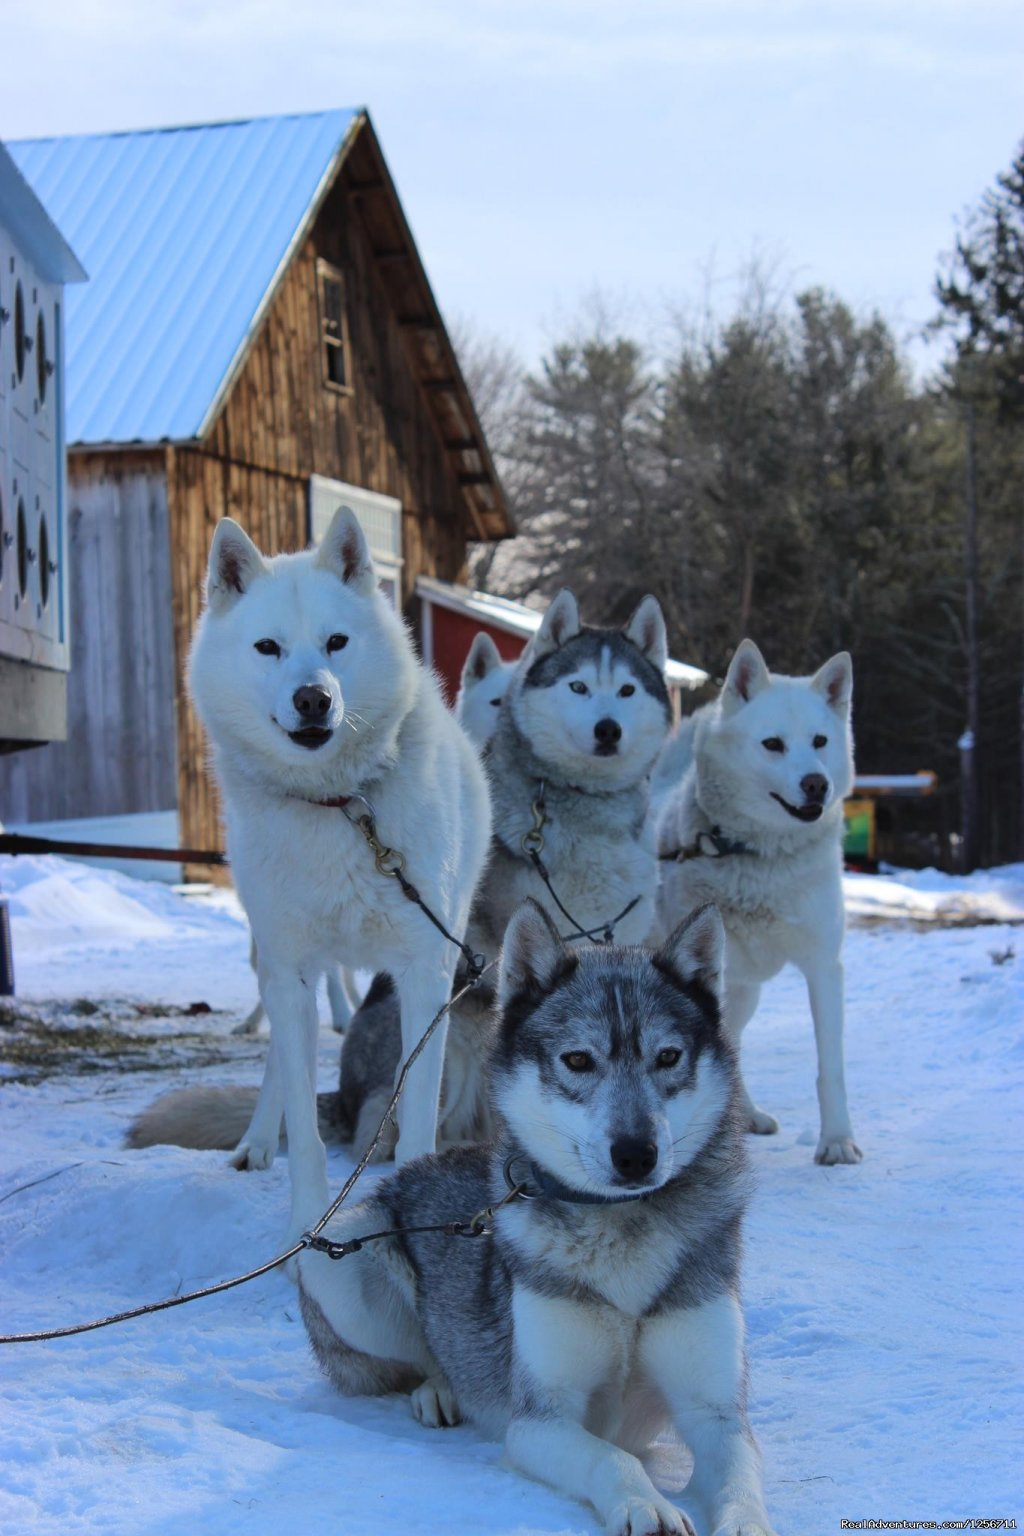 Barking Brook Sled Dog Adventures, llc: come with us for a dog sled ride and experience an exciting new adventure! Dog sledding is the perfect way to EXPLORE and ENJOY the White Mountains and Lakes Region of New Hampshire.